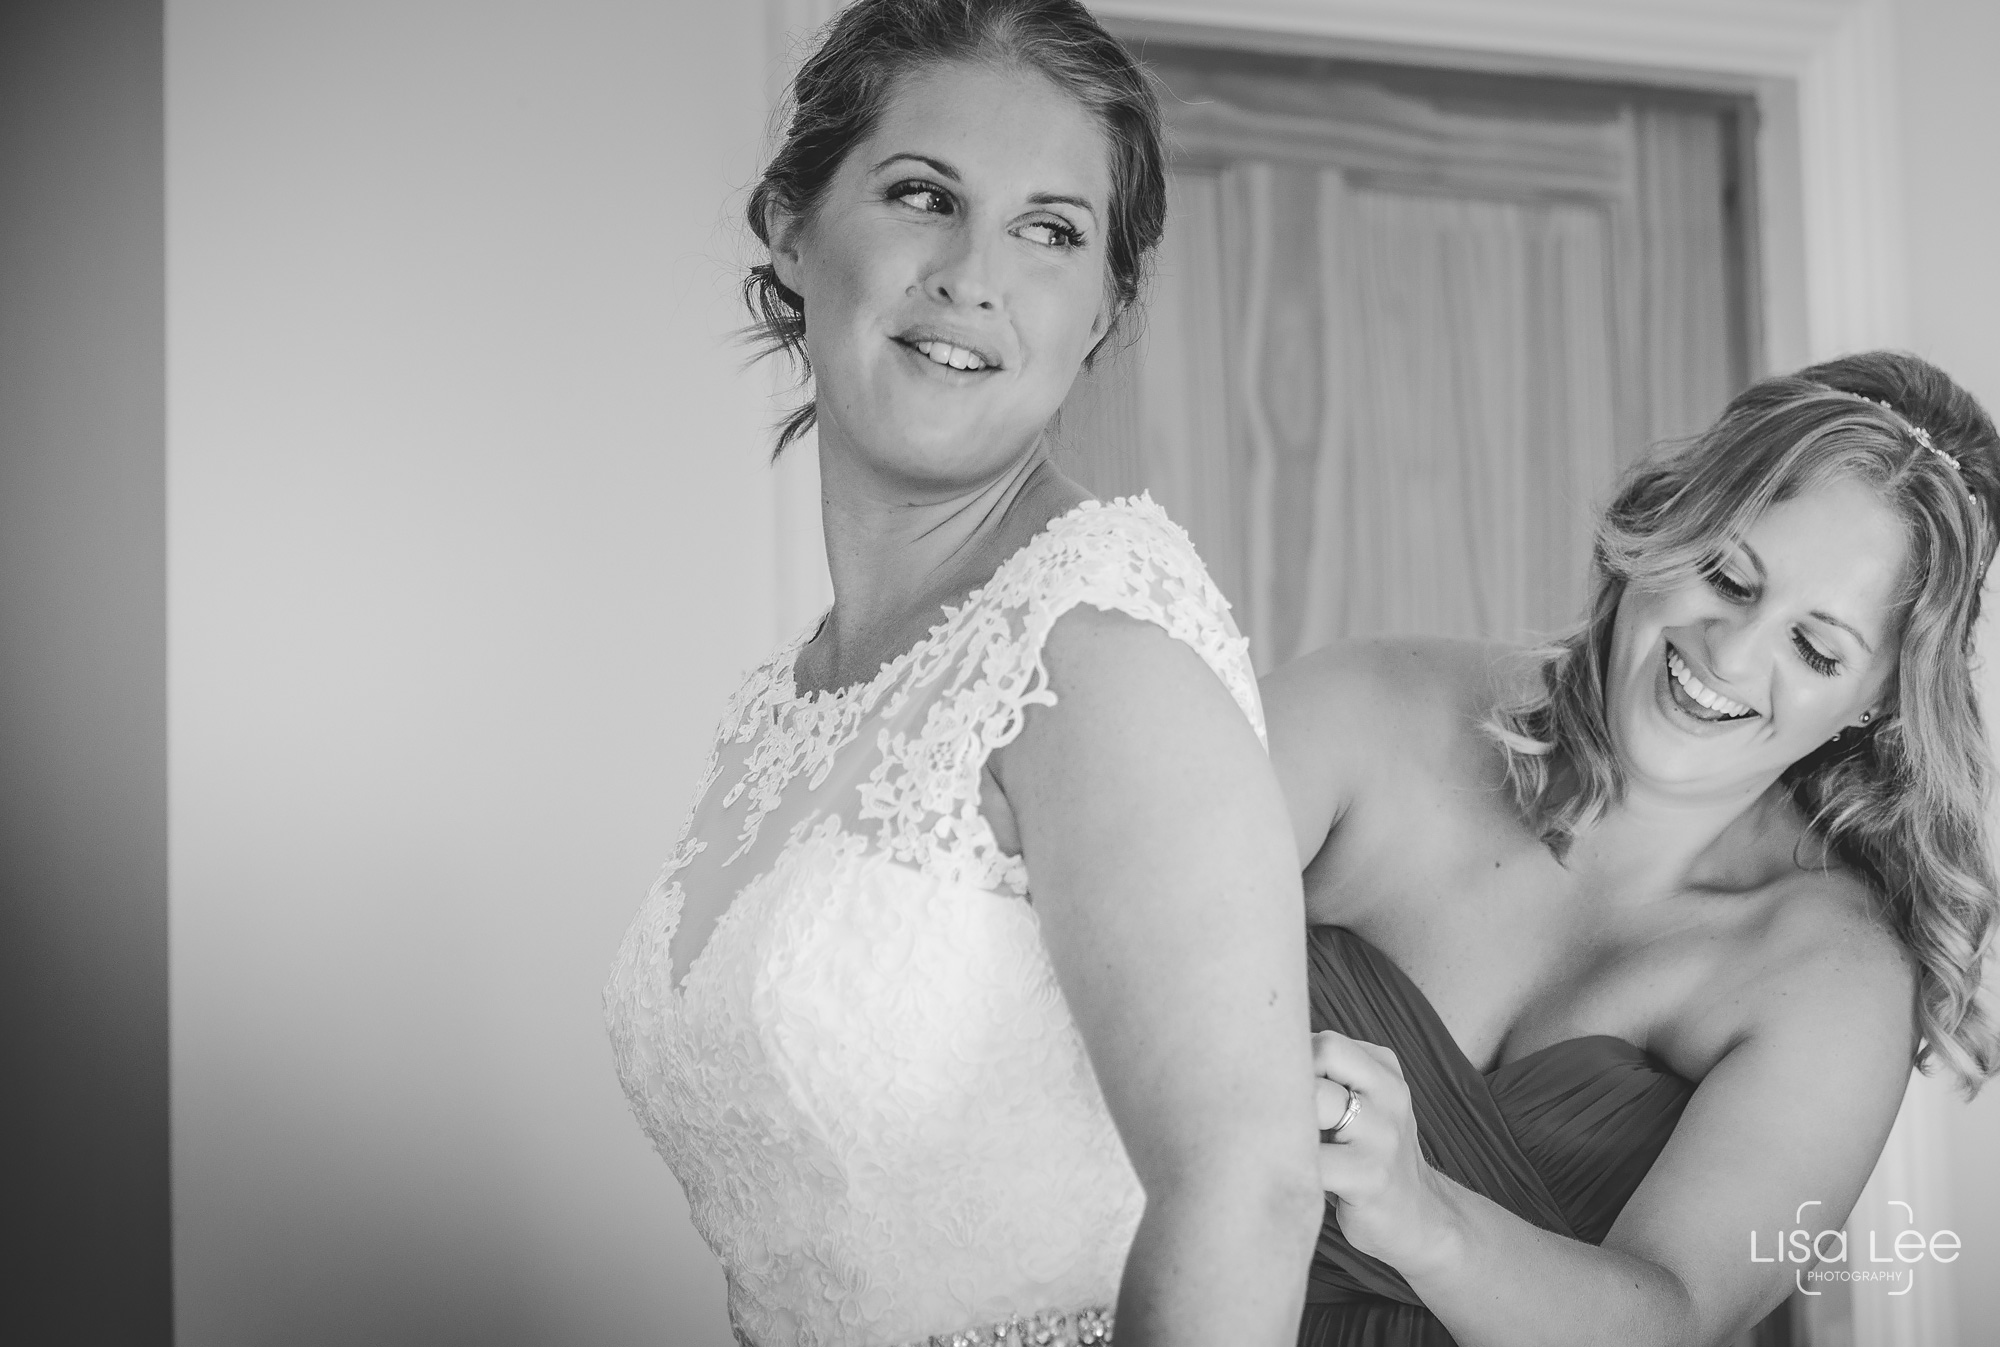 Lisa-Lee-Documentary-Wedding-Photography-Bournemouth-16.jpg